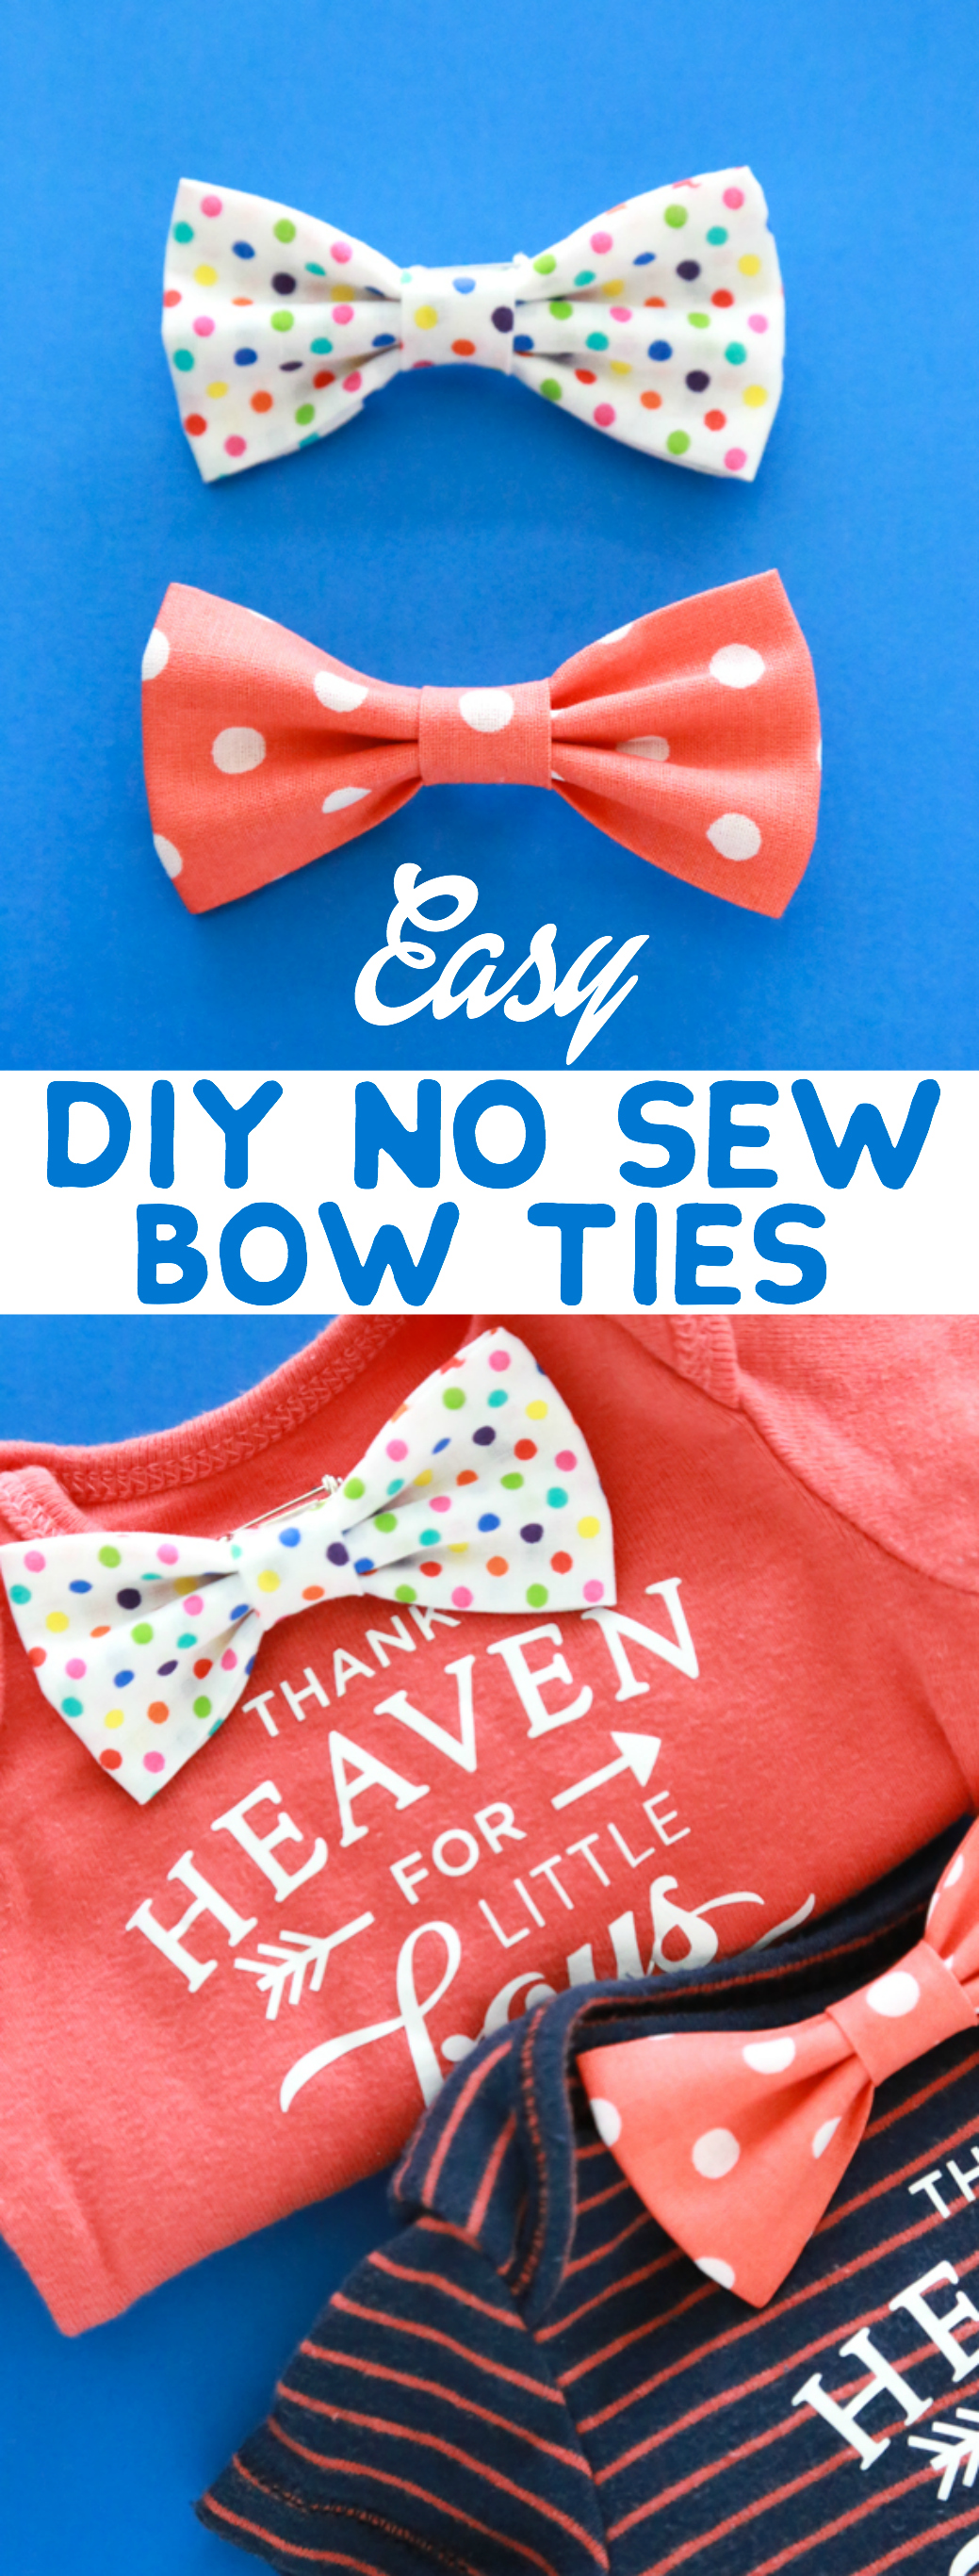 These DIY No Sew Bow Ties are so easy to make and lets face it – they're adorable, too!